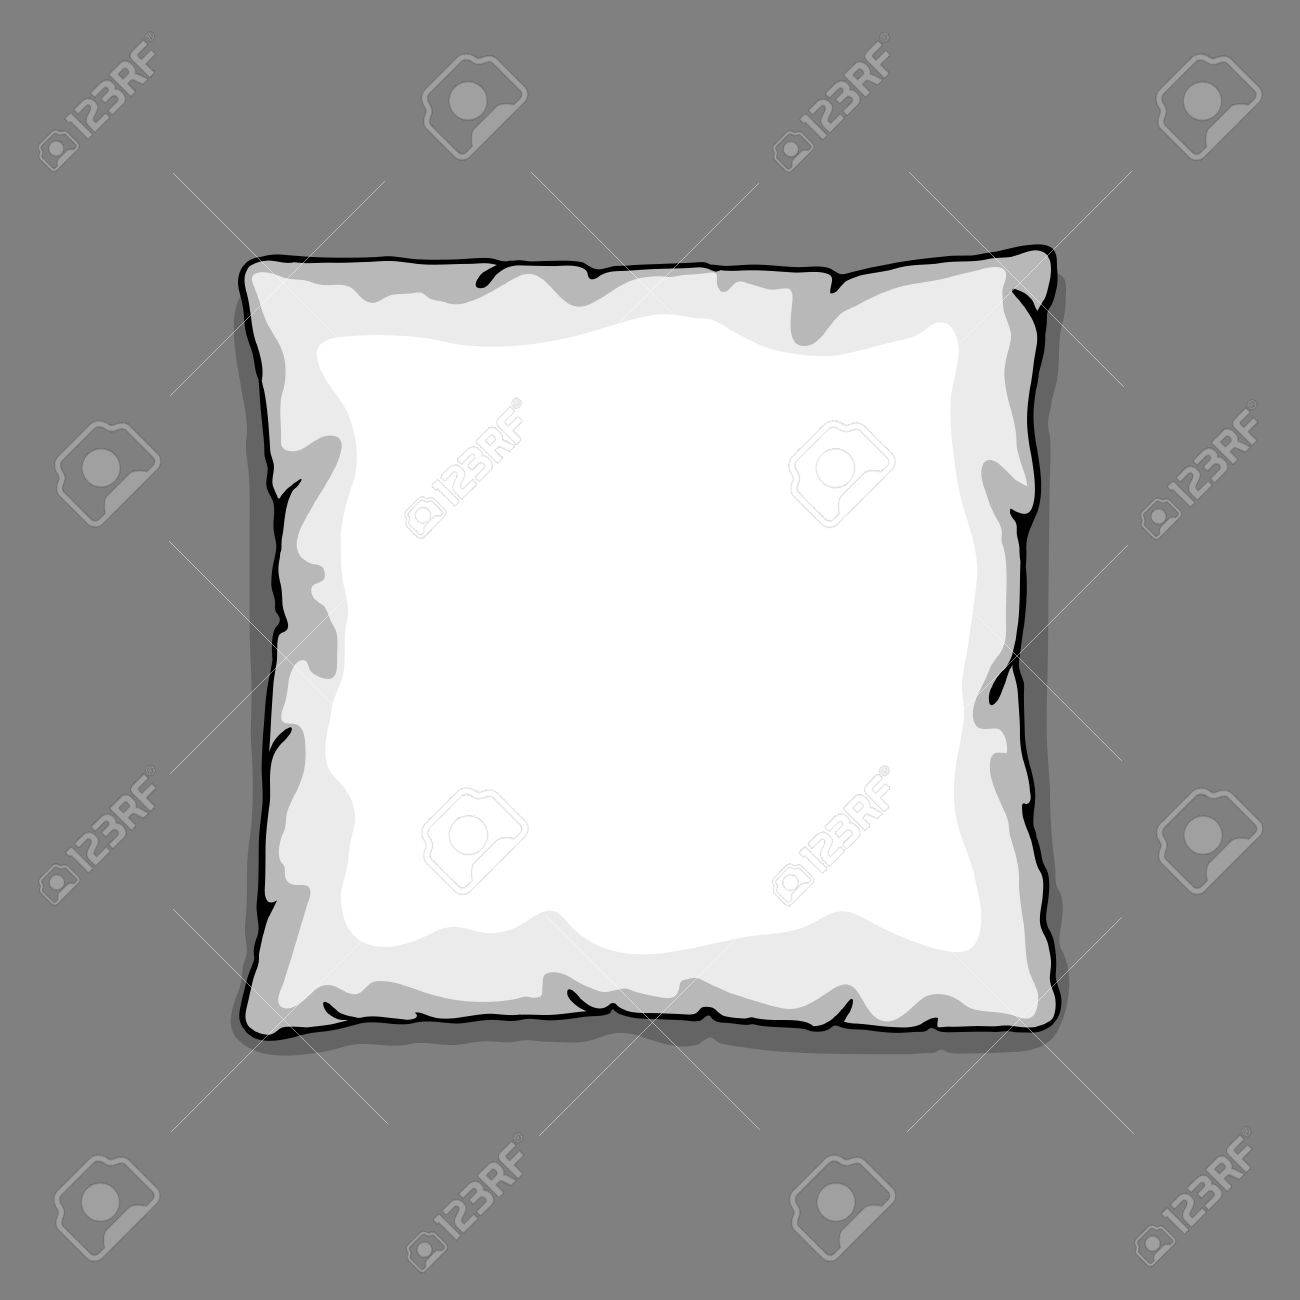 bed pillow template isolated on gray background sketch illustration